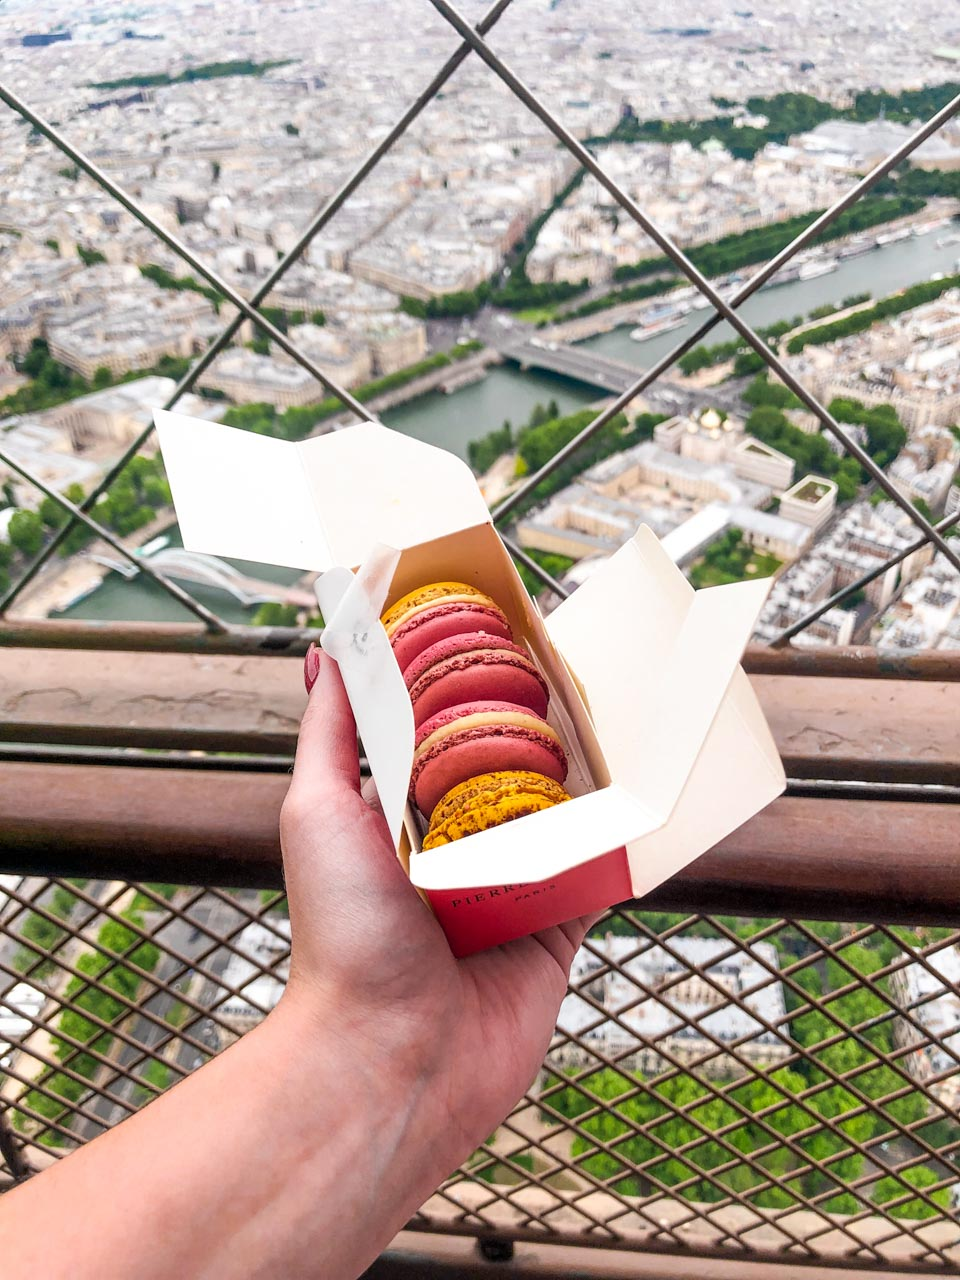 A woman's hand holding up a box of Pierre Hermé macarons at the top of the Eiffel Tower with the panorama of Paris visible in the background